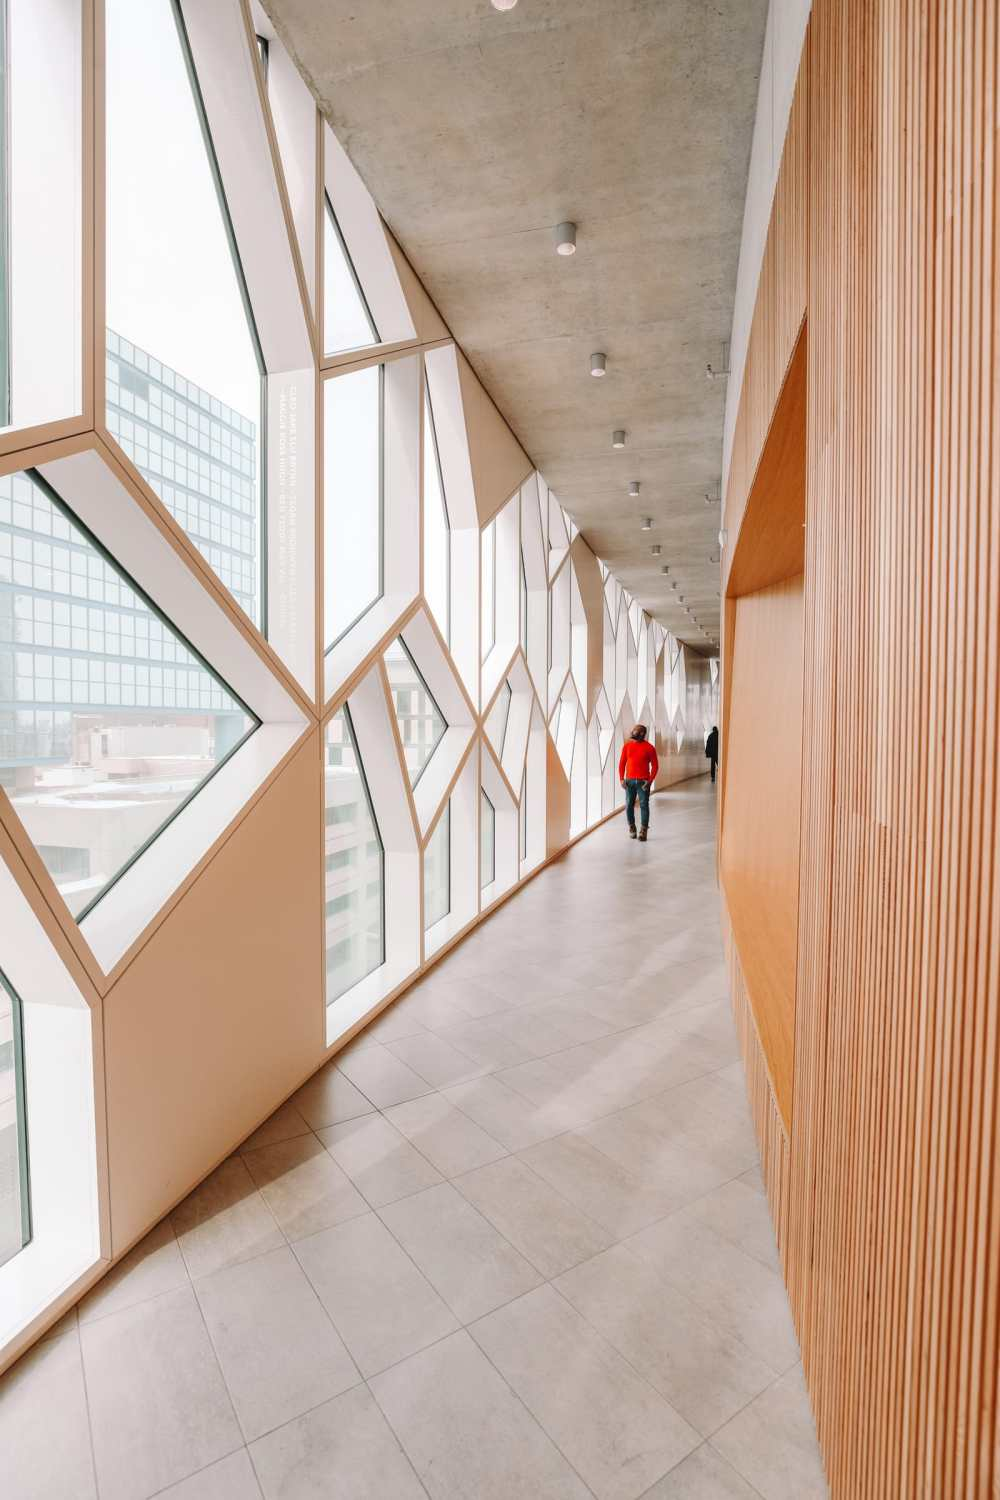 Finding Calgary's Architectural Masterpieces - Studio Bell And The Central Library (46)